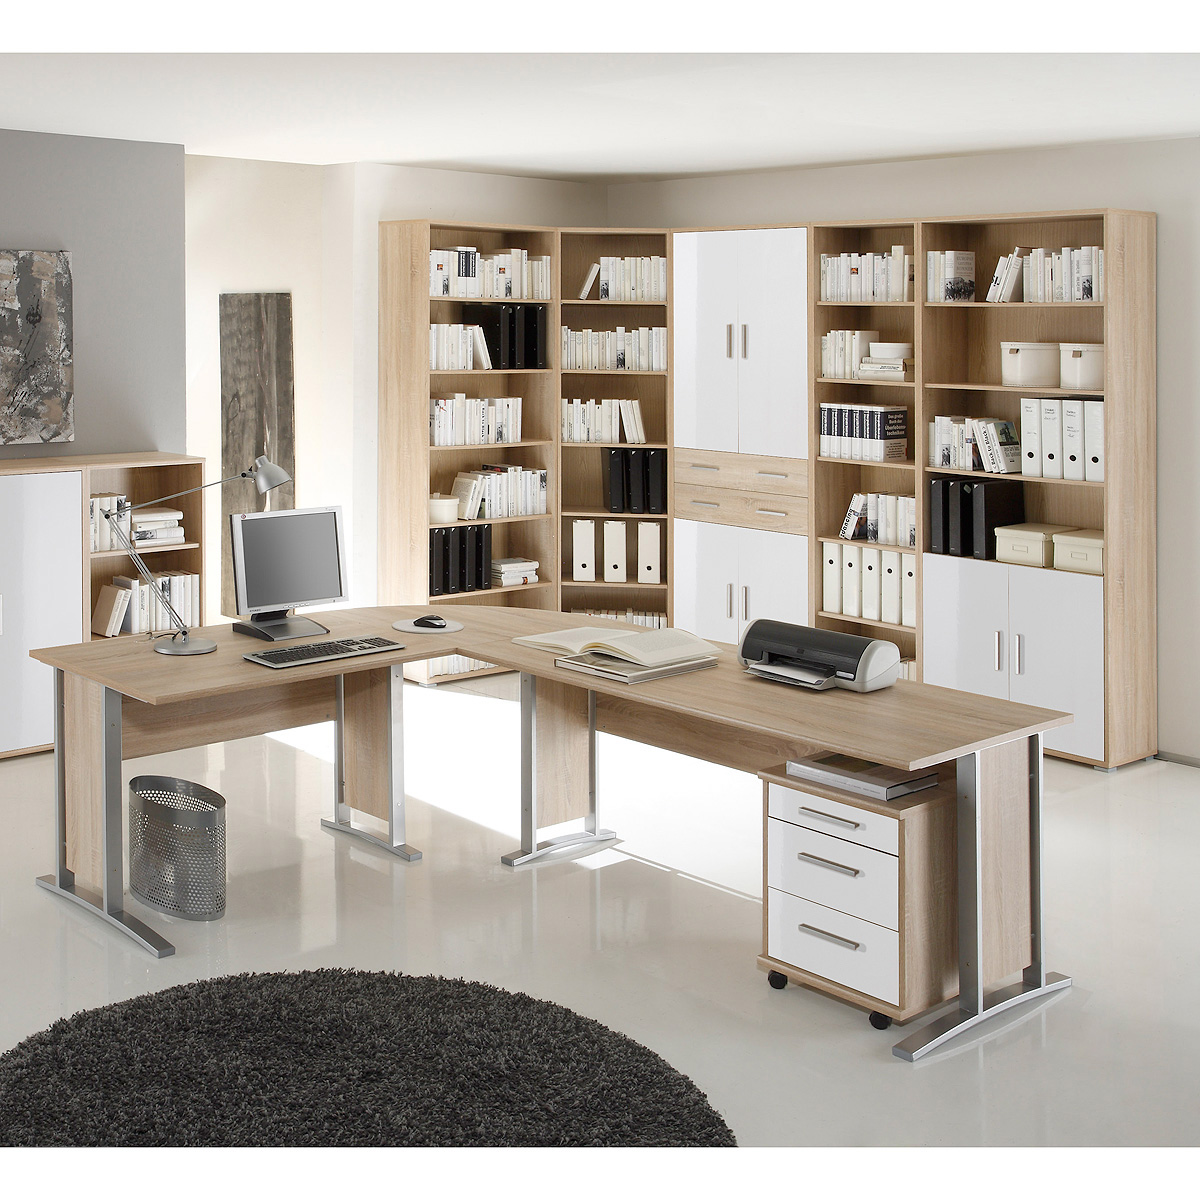 b ro set 2 office line biz schreibtisch regal container sonoma eiche wei ebay. Black Bedroom Furniture Sets. Home Design Ideas